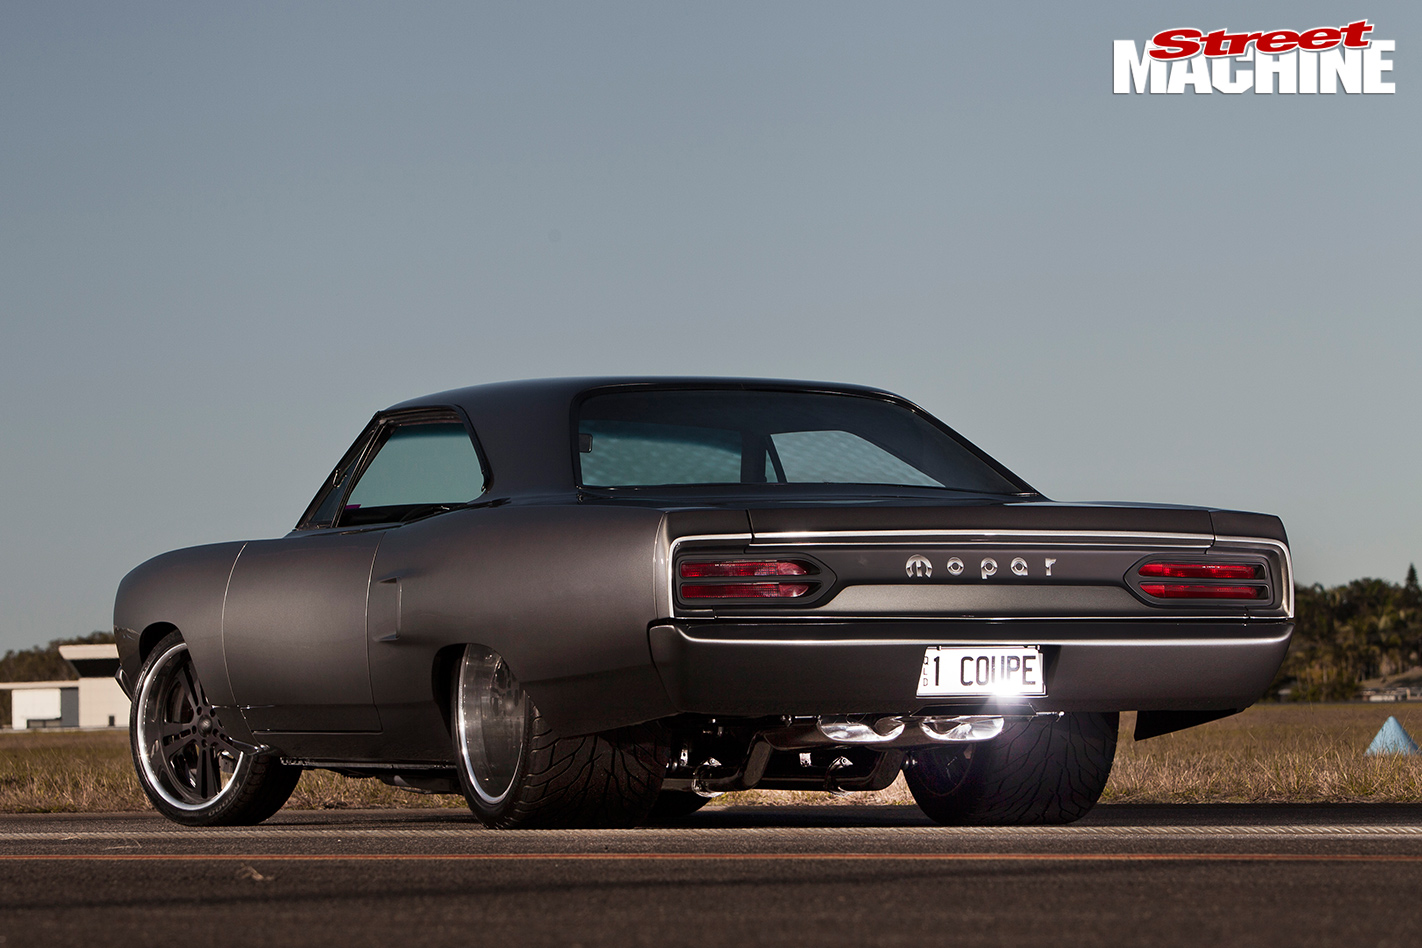 500-CUBE 1970 PLYMOUTH SATELLITE | Street Machine